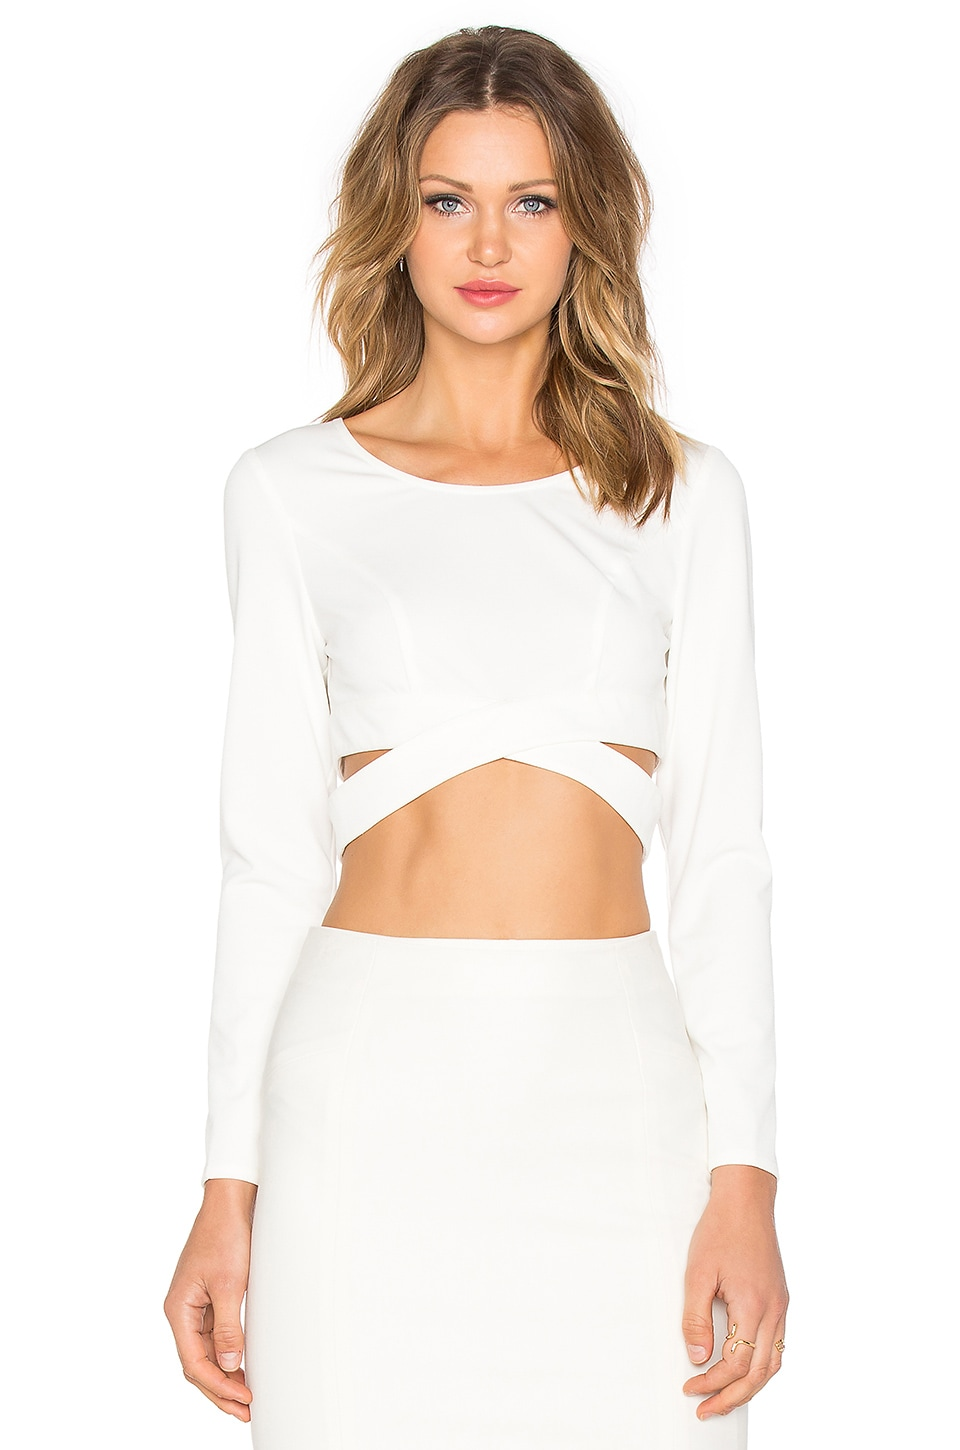 Lumier Surreal Silence Wrap Crop Top in White